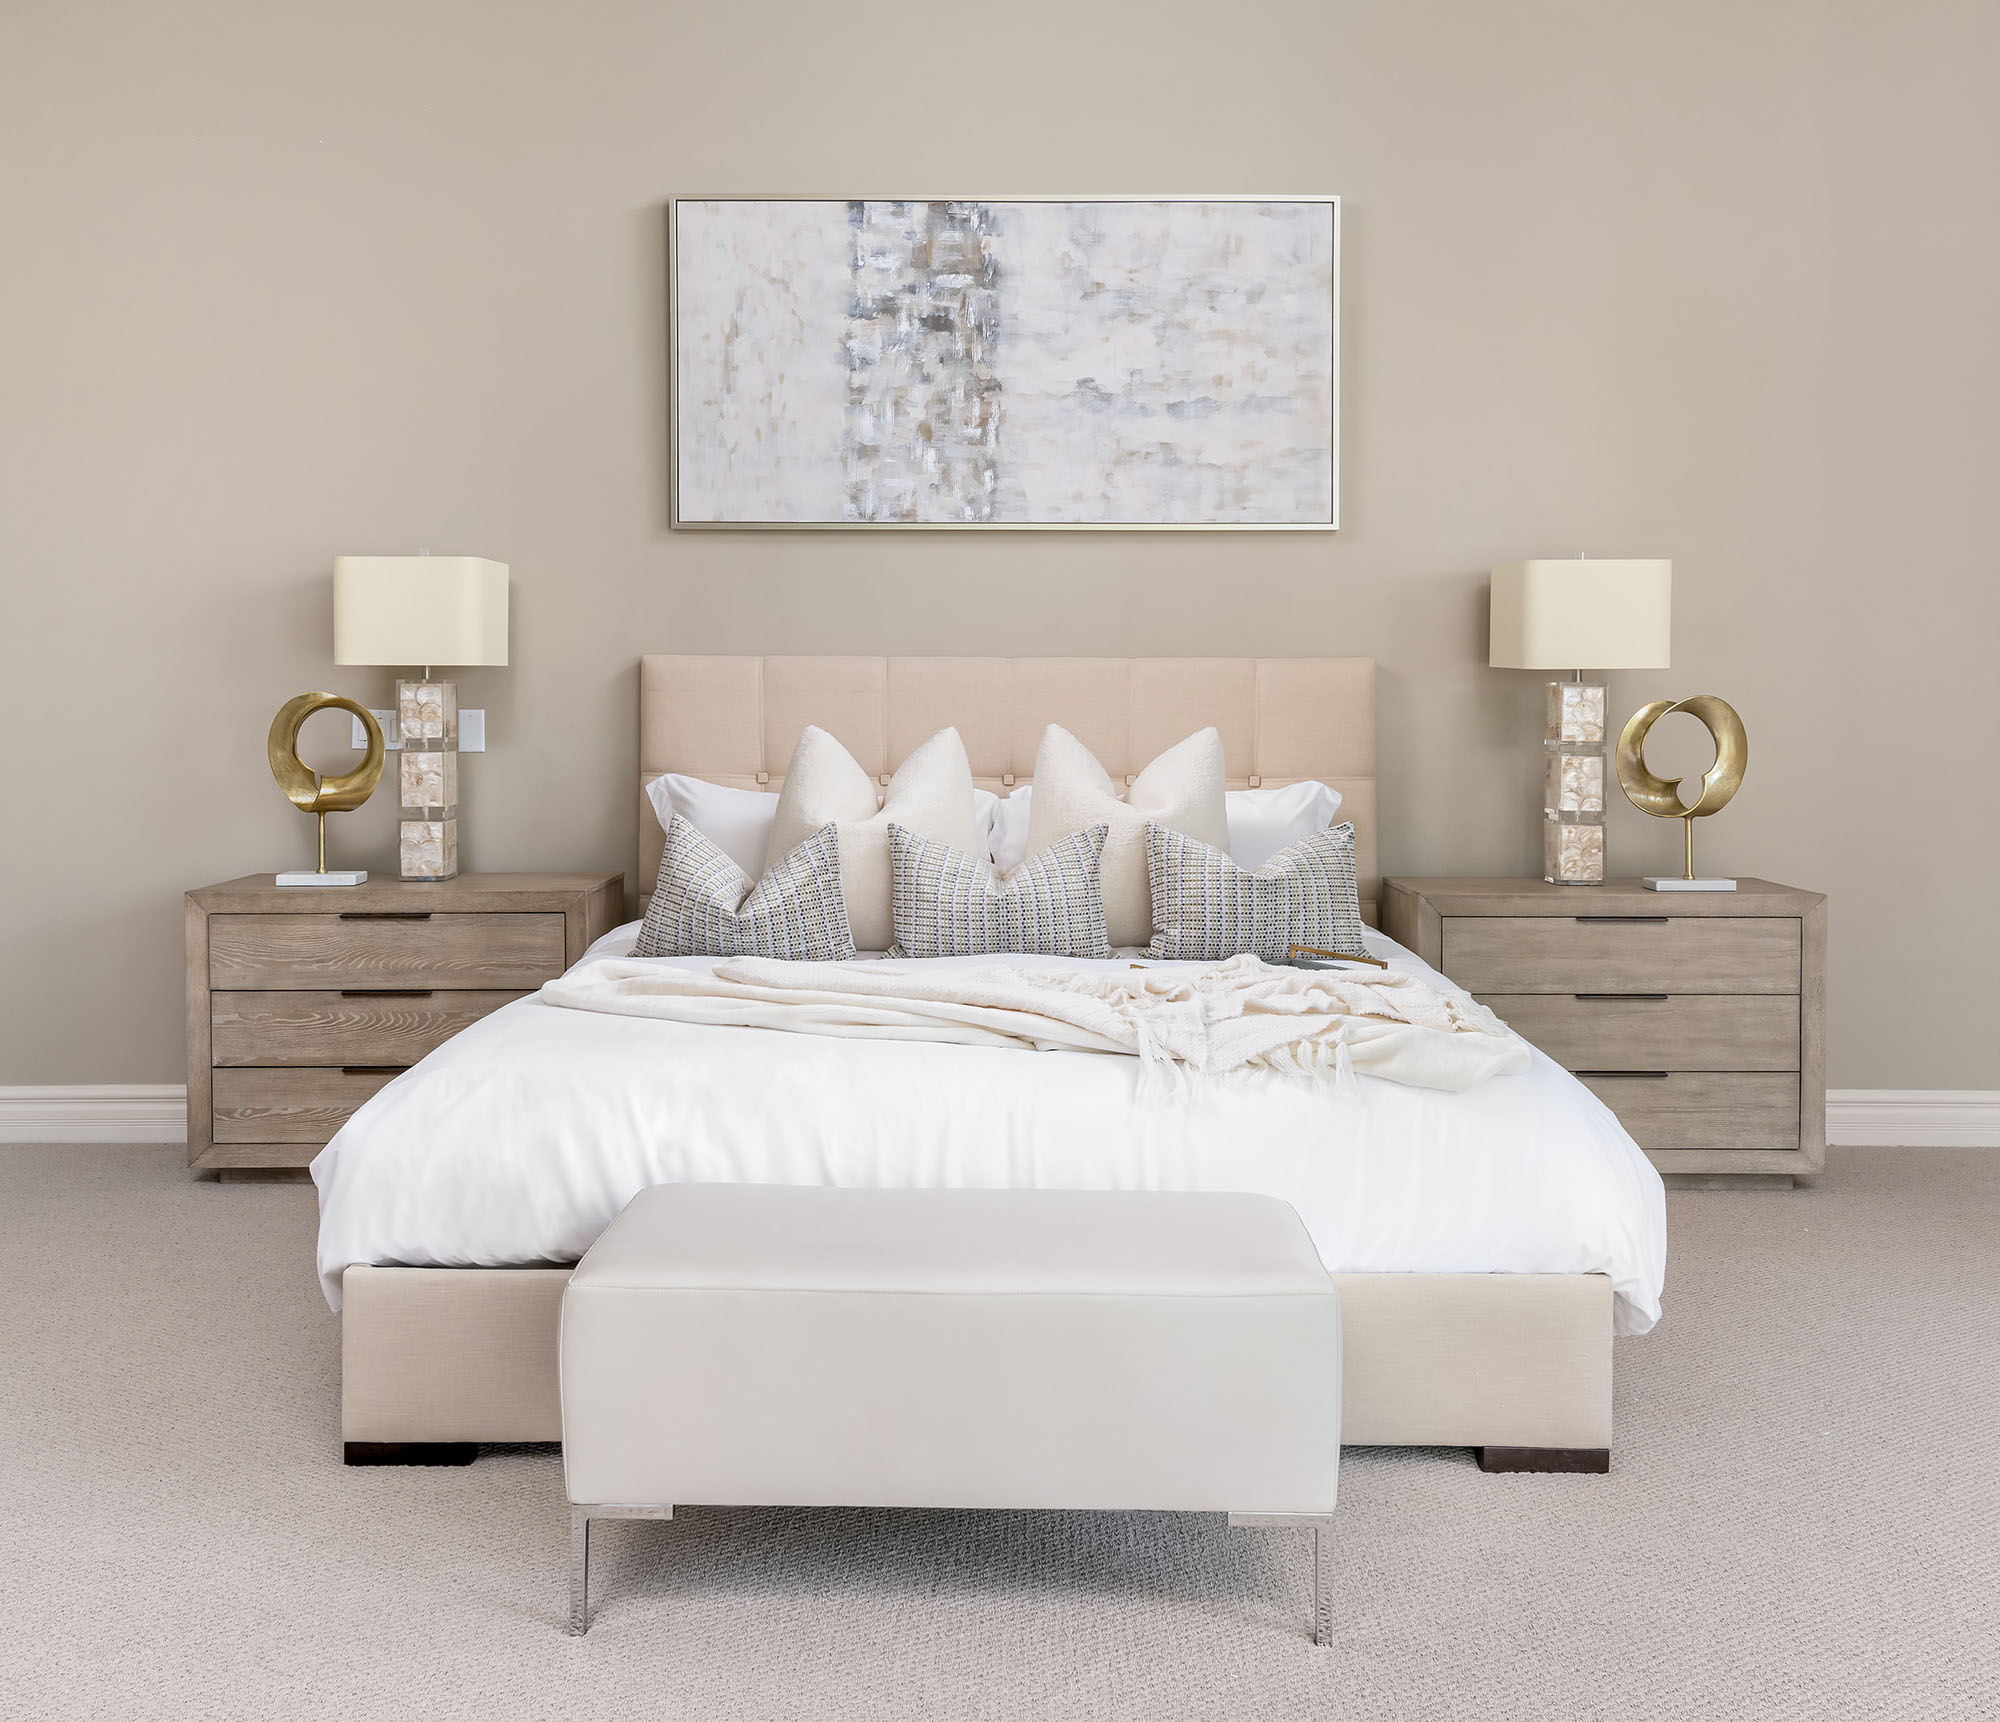 Stately_Home_Staging-2297_FA-020-Master_Bedroom.jpg